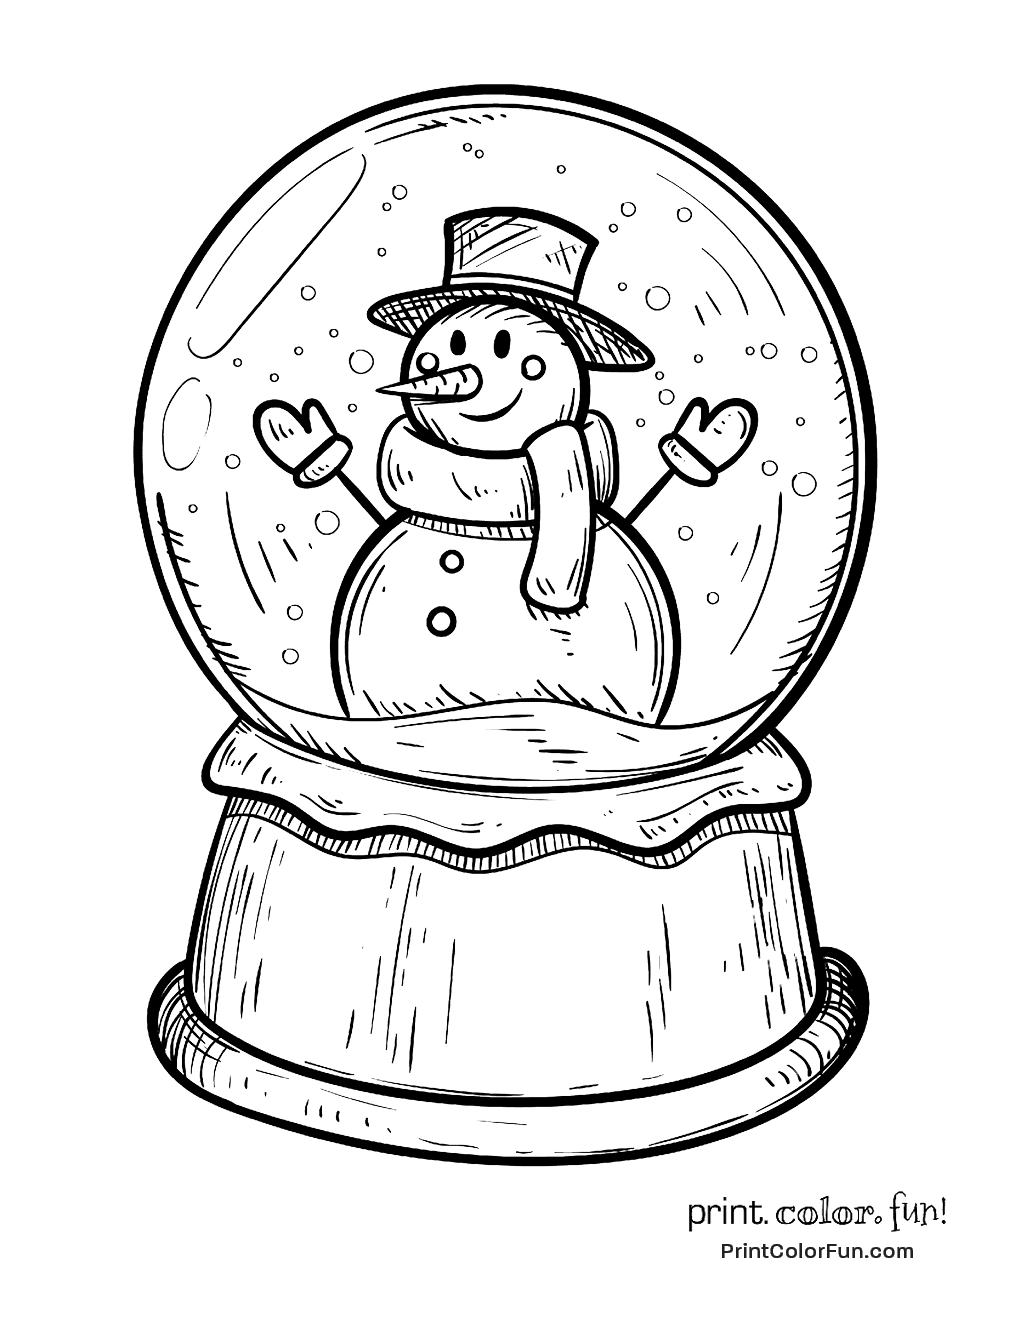 Snow Globe Coloring Page Winter Snow Globe With Snowman Coloring Page  Printcolorfun